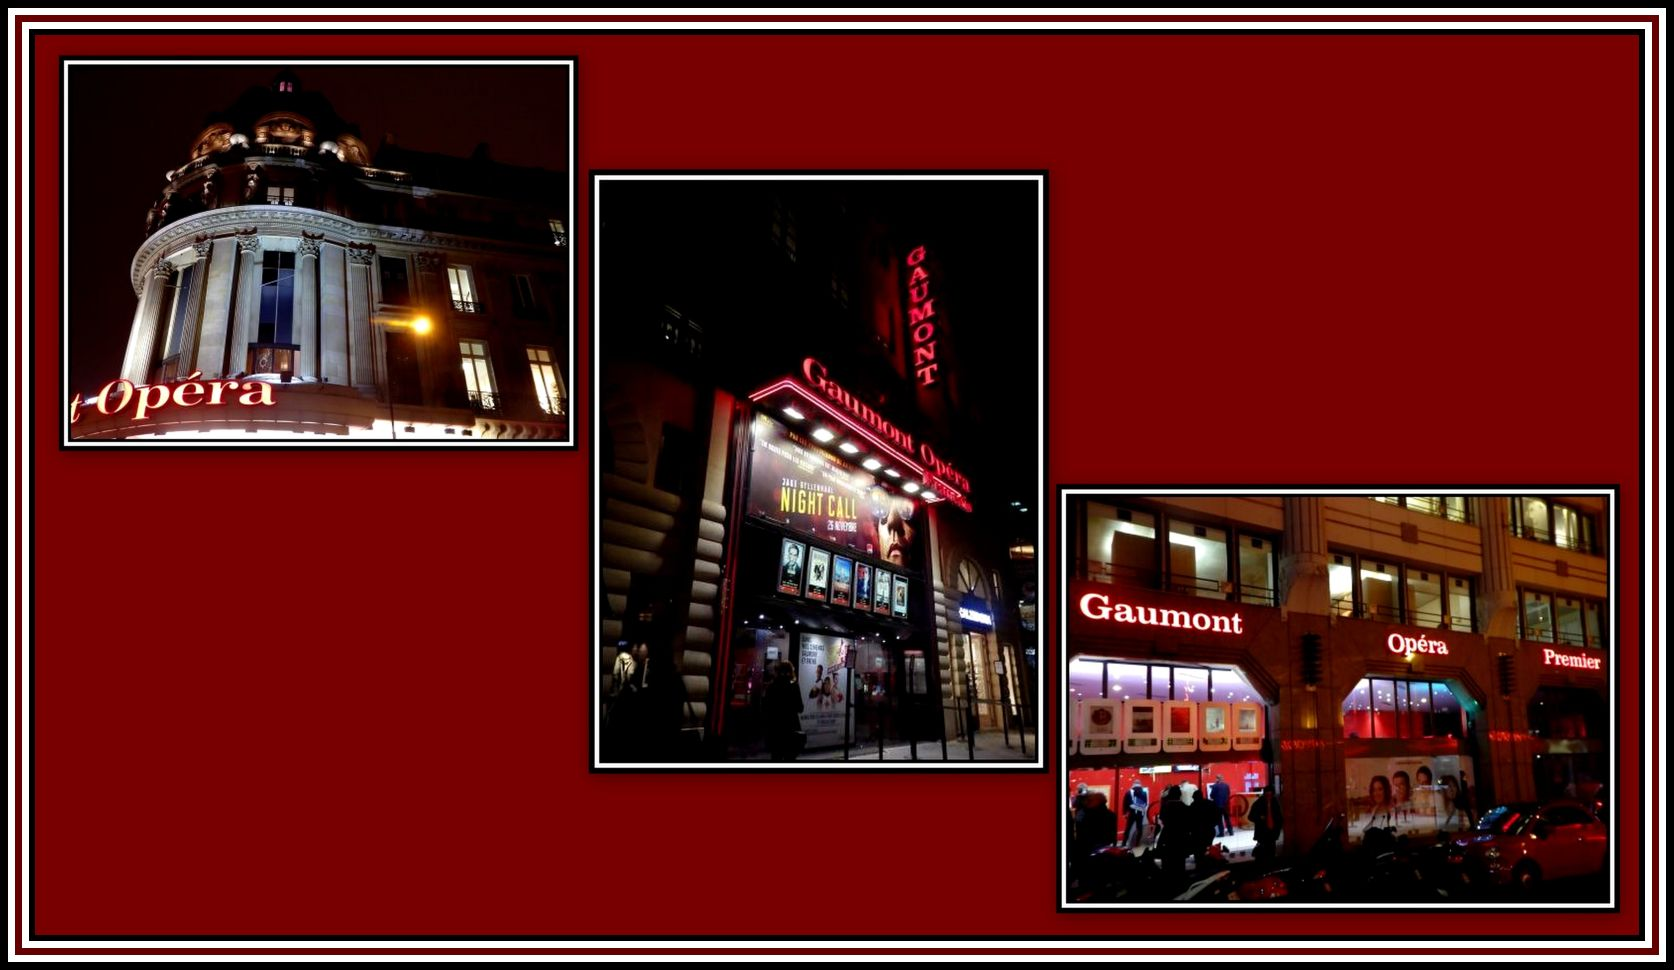 3 Gaumont Operas Collage